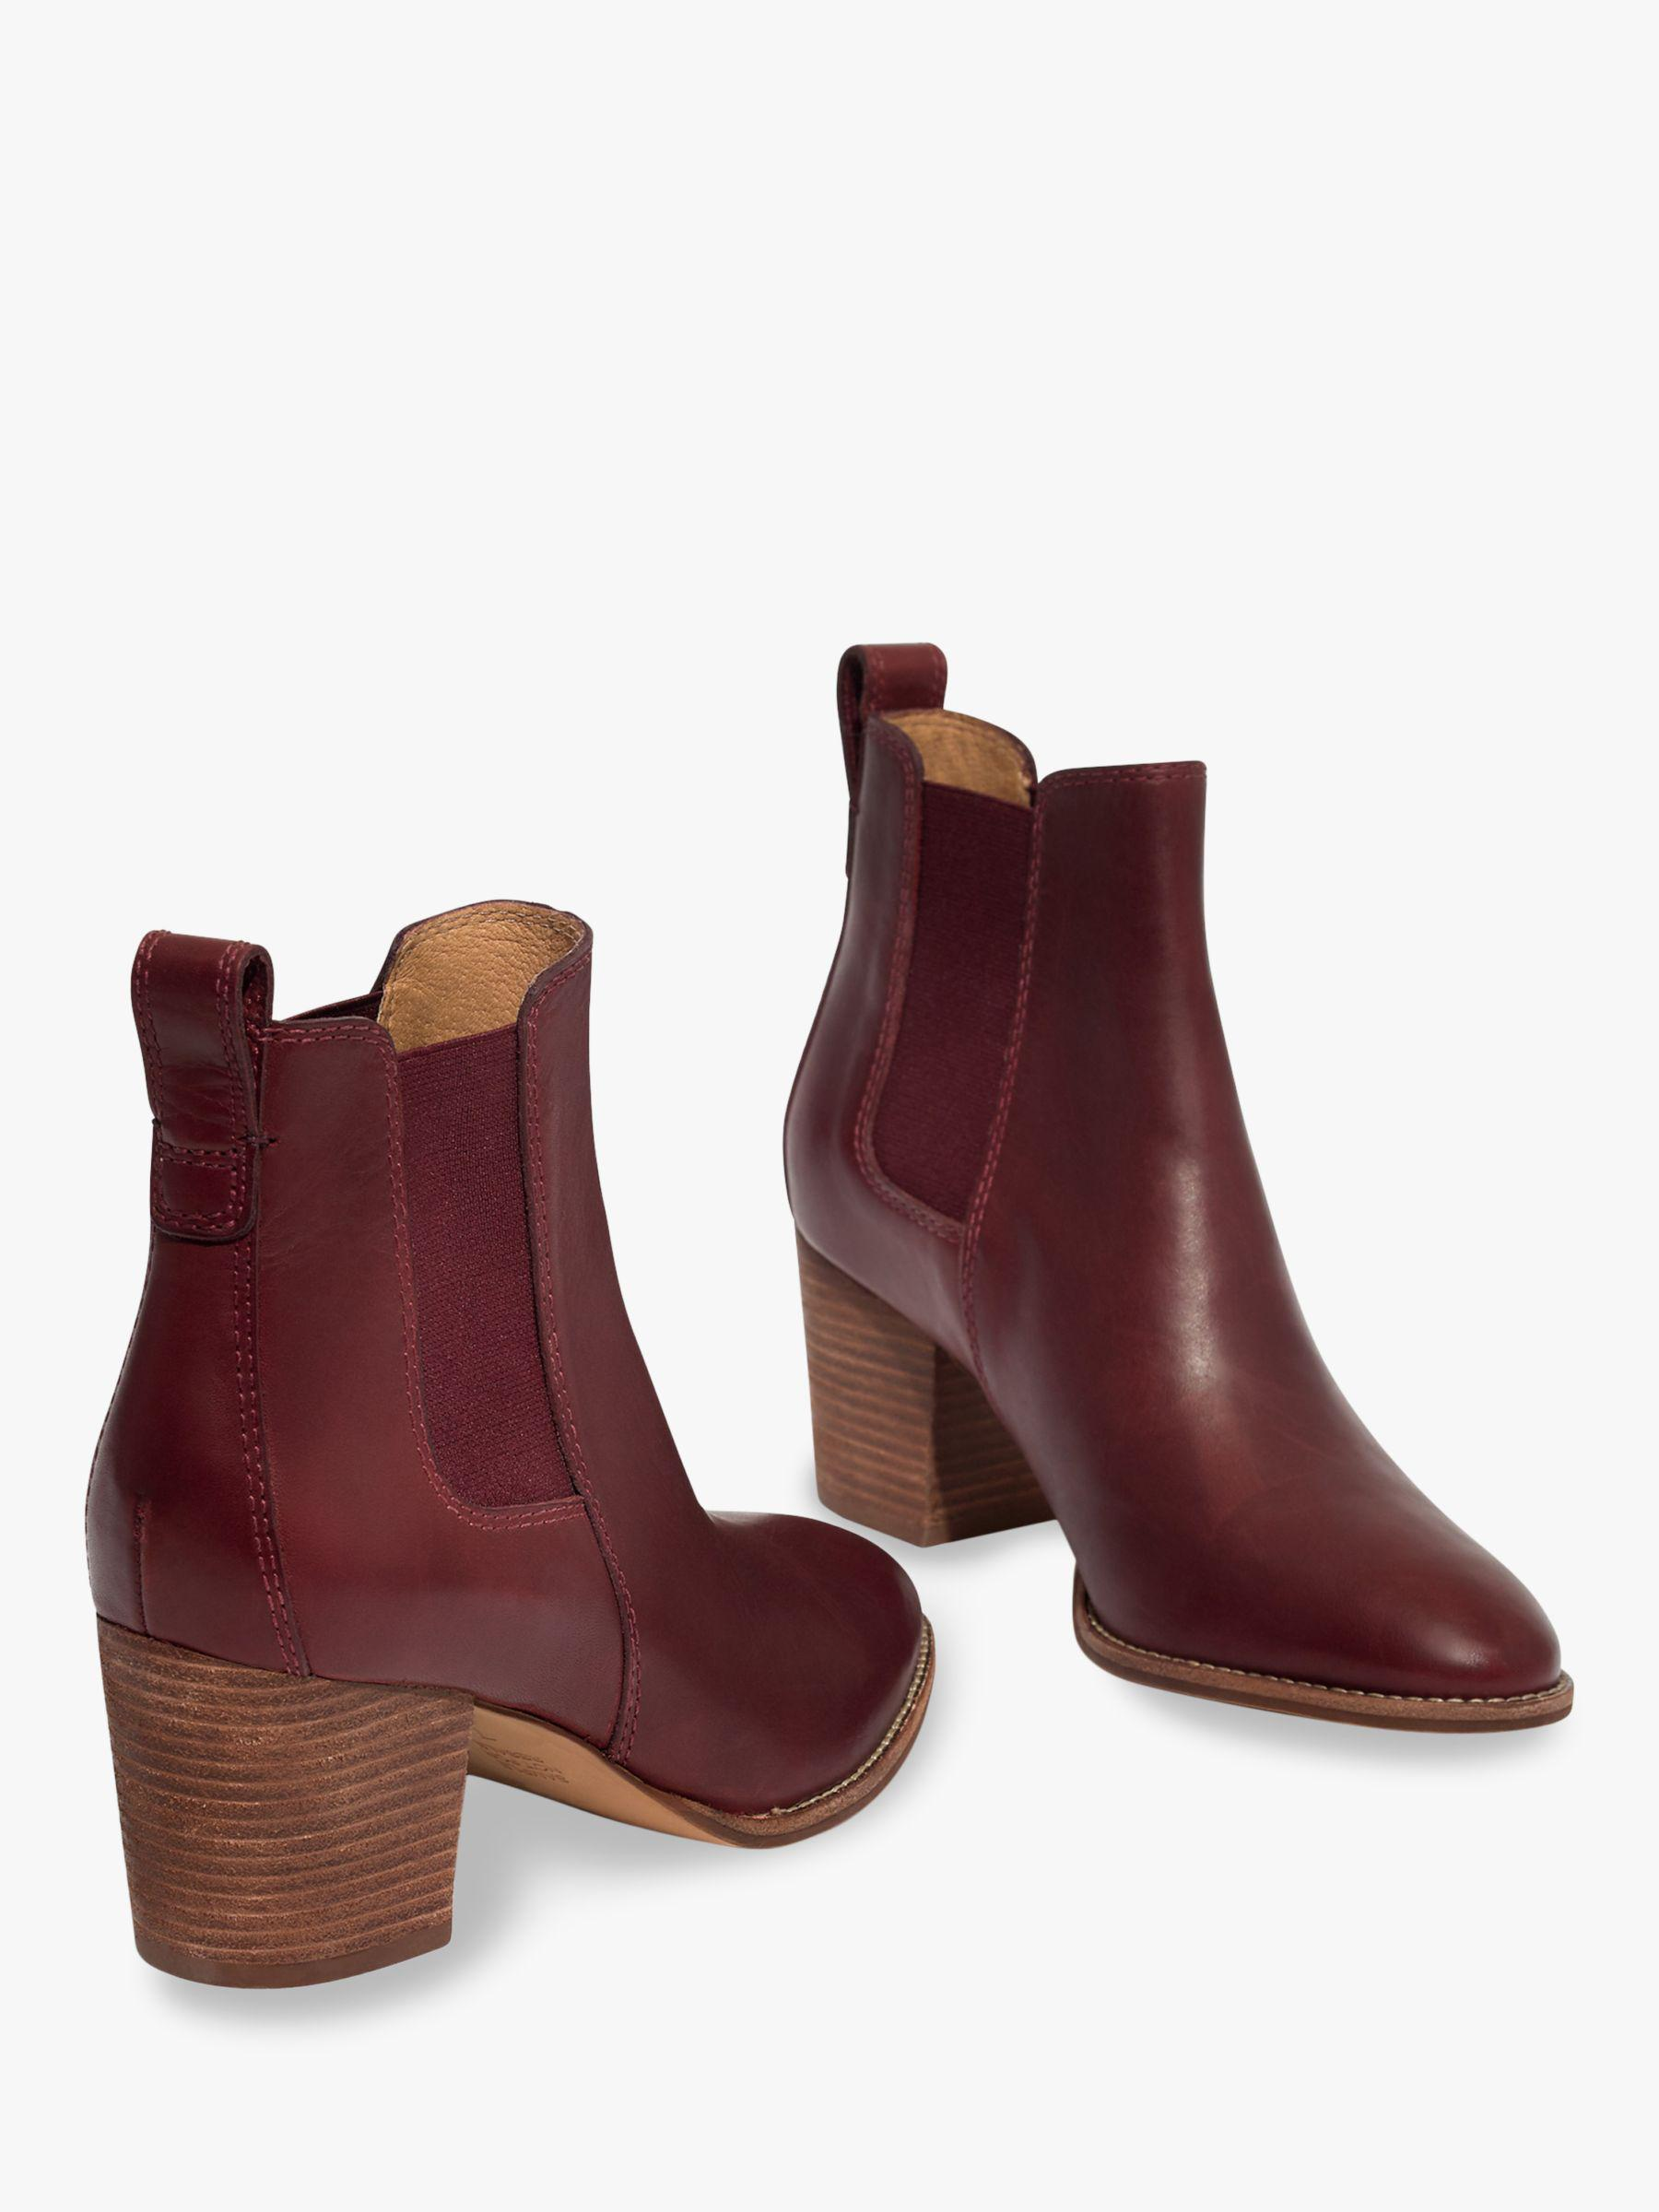 6e92941f7 Madewell - Red Regan Leather Chelsea Ankle Boots - Lyst. View fullscreen